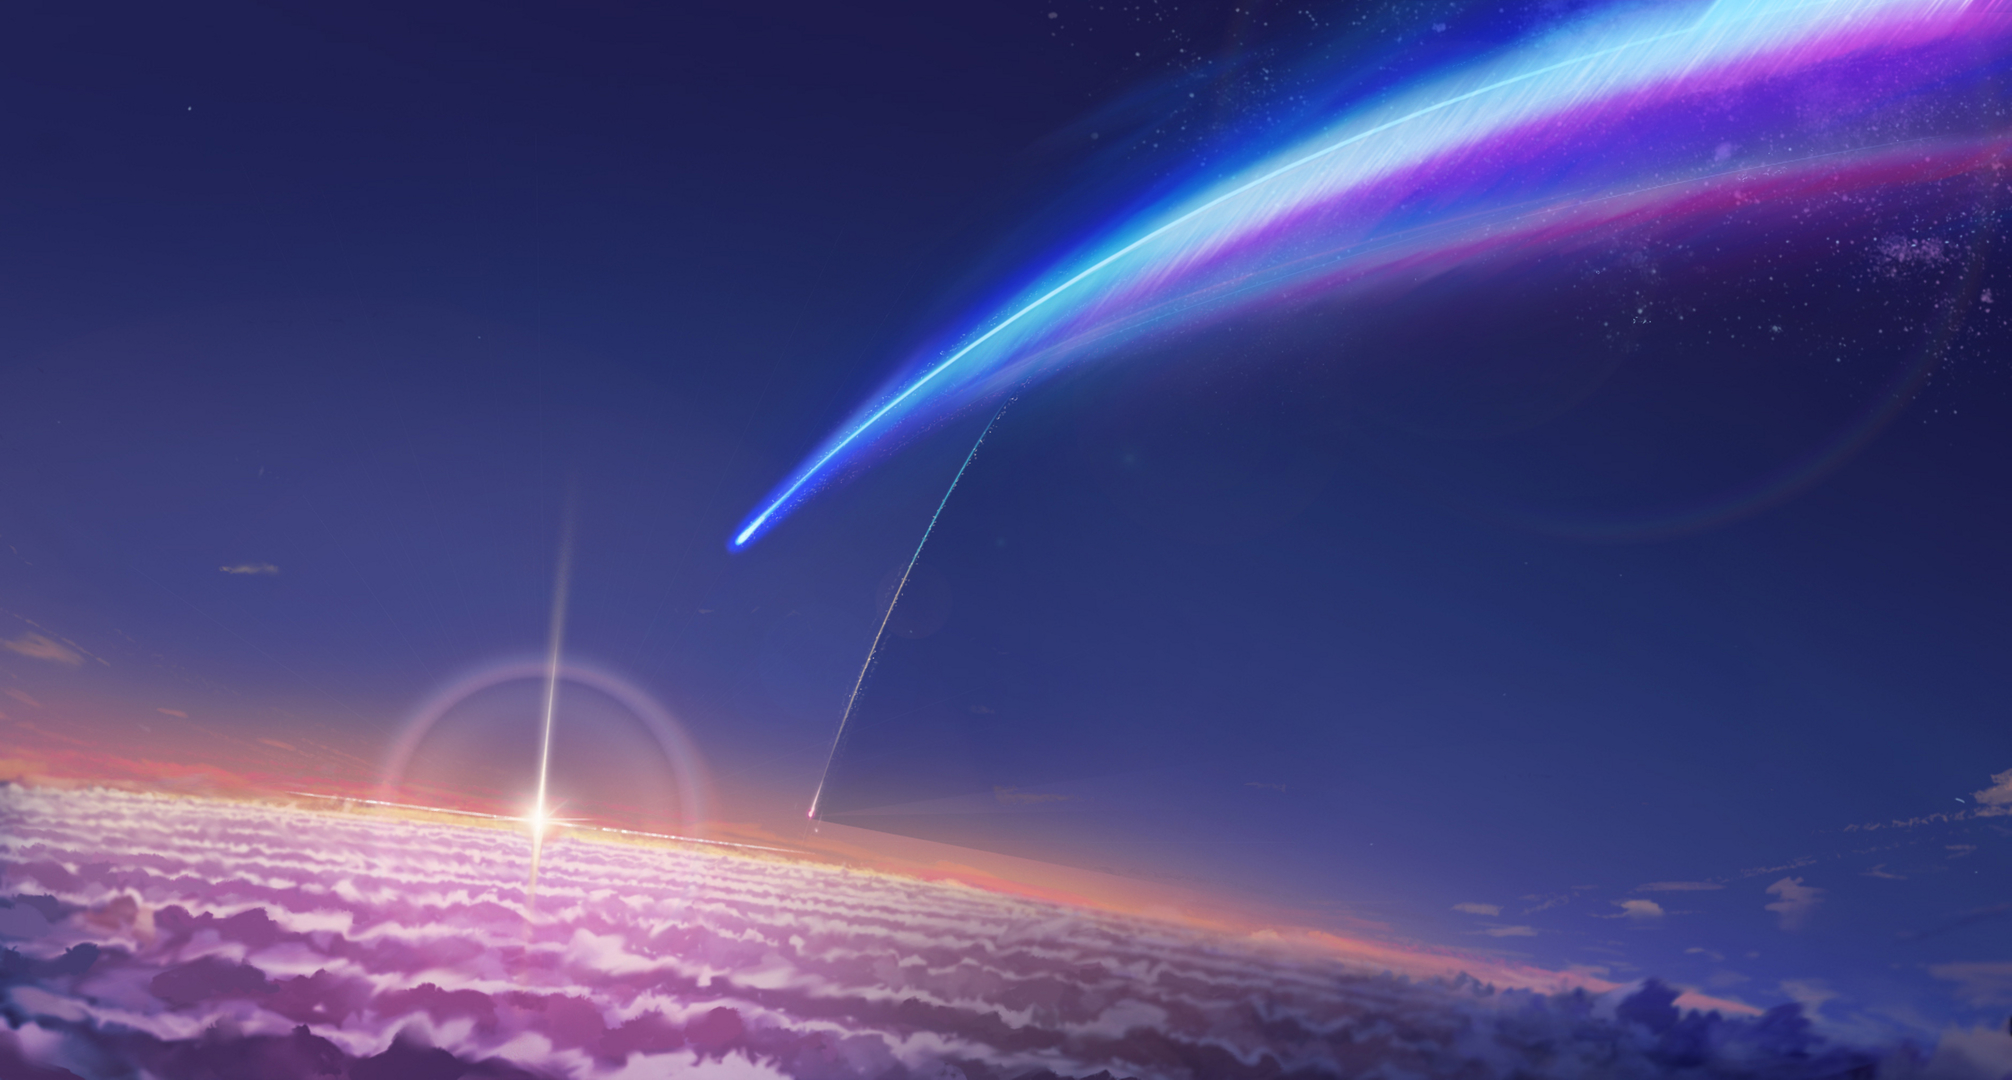 Your name 1080p, 2k, 4k, 5k hd wallpapers free download, these wallpapers are free. Your Name. HD Wallpaper | Background Image | 2012x1080 ...